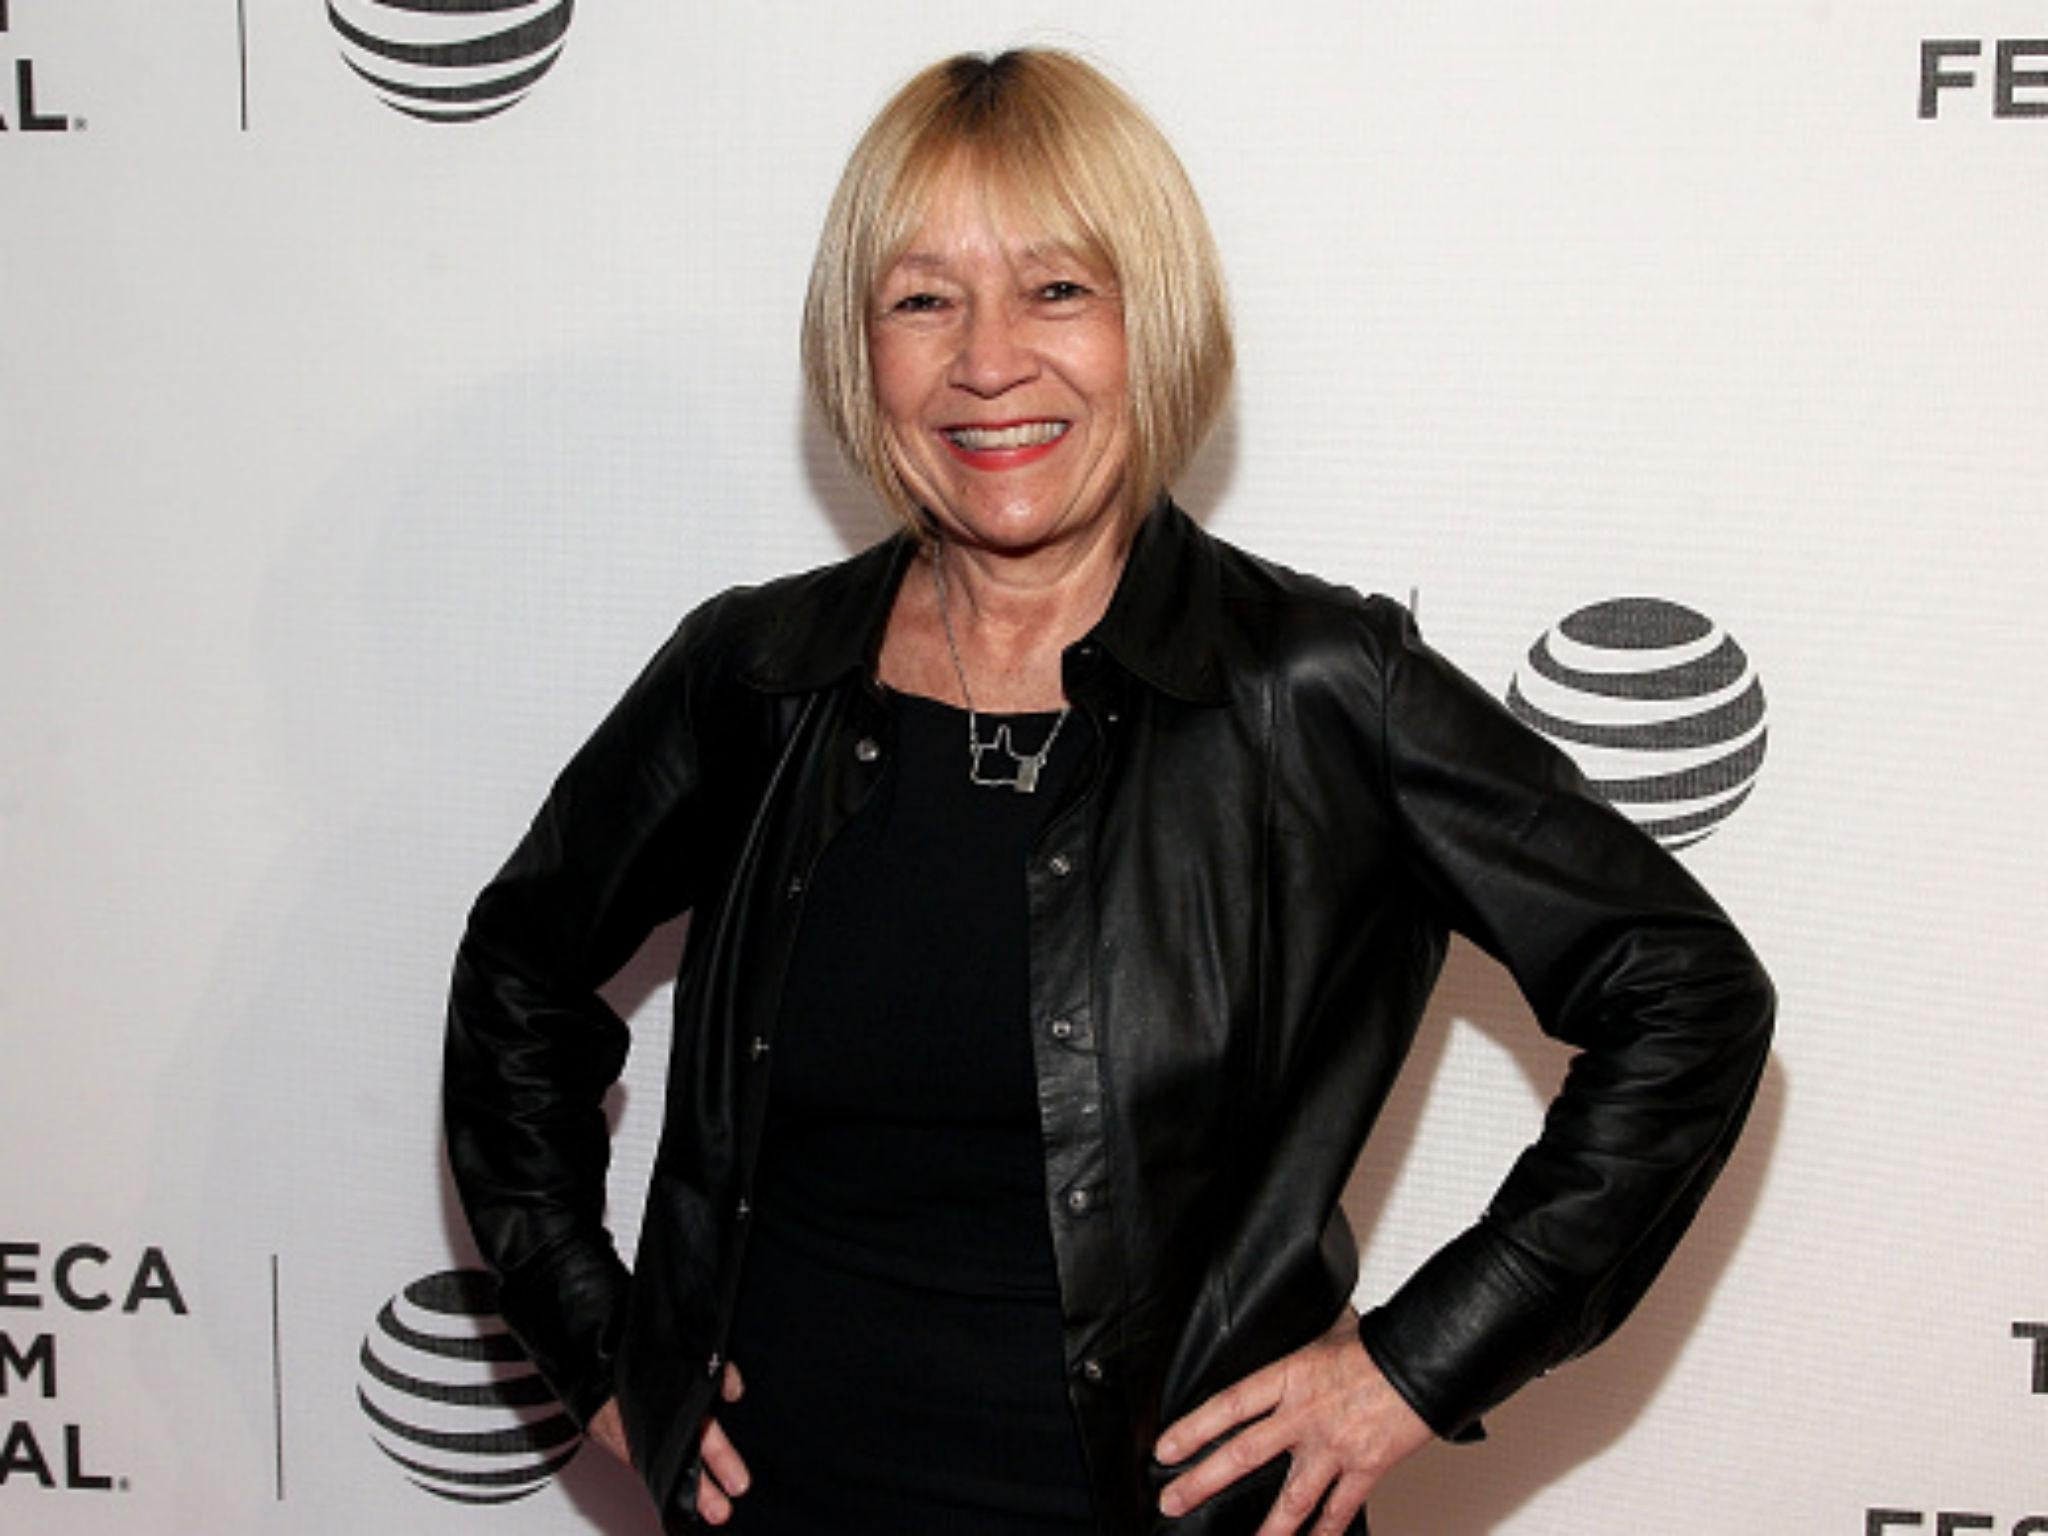 life style love cindy gallop make porn social sexual revolution toys watch talk gender equality